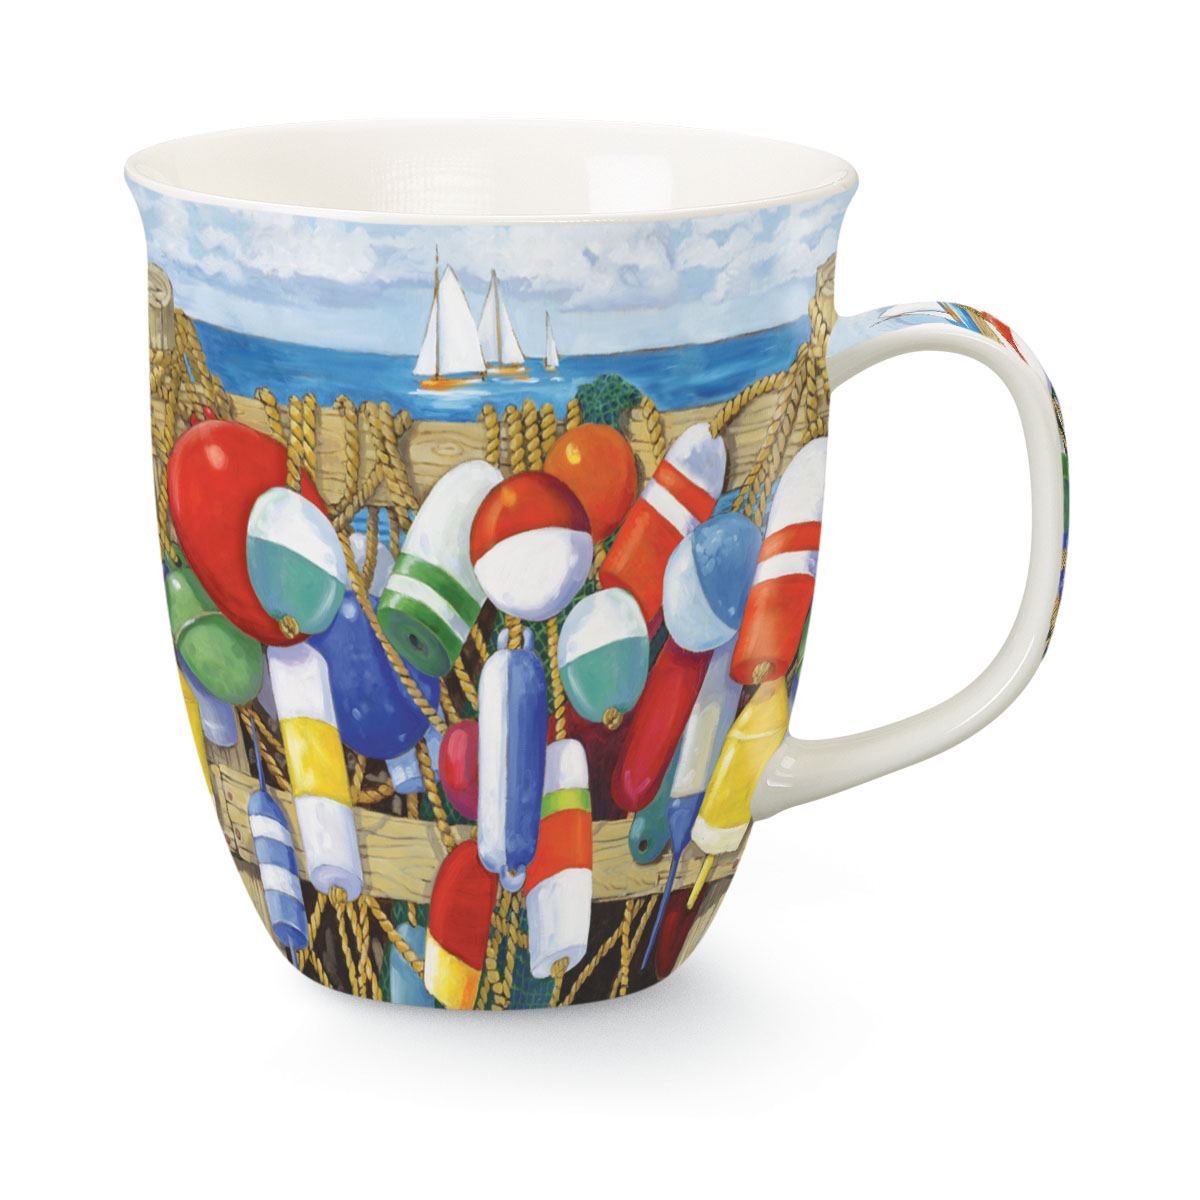 Coastal Buoys of All Sizes and Colors Coffee Latte Tea 16 Ounce Mug Cup